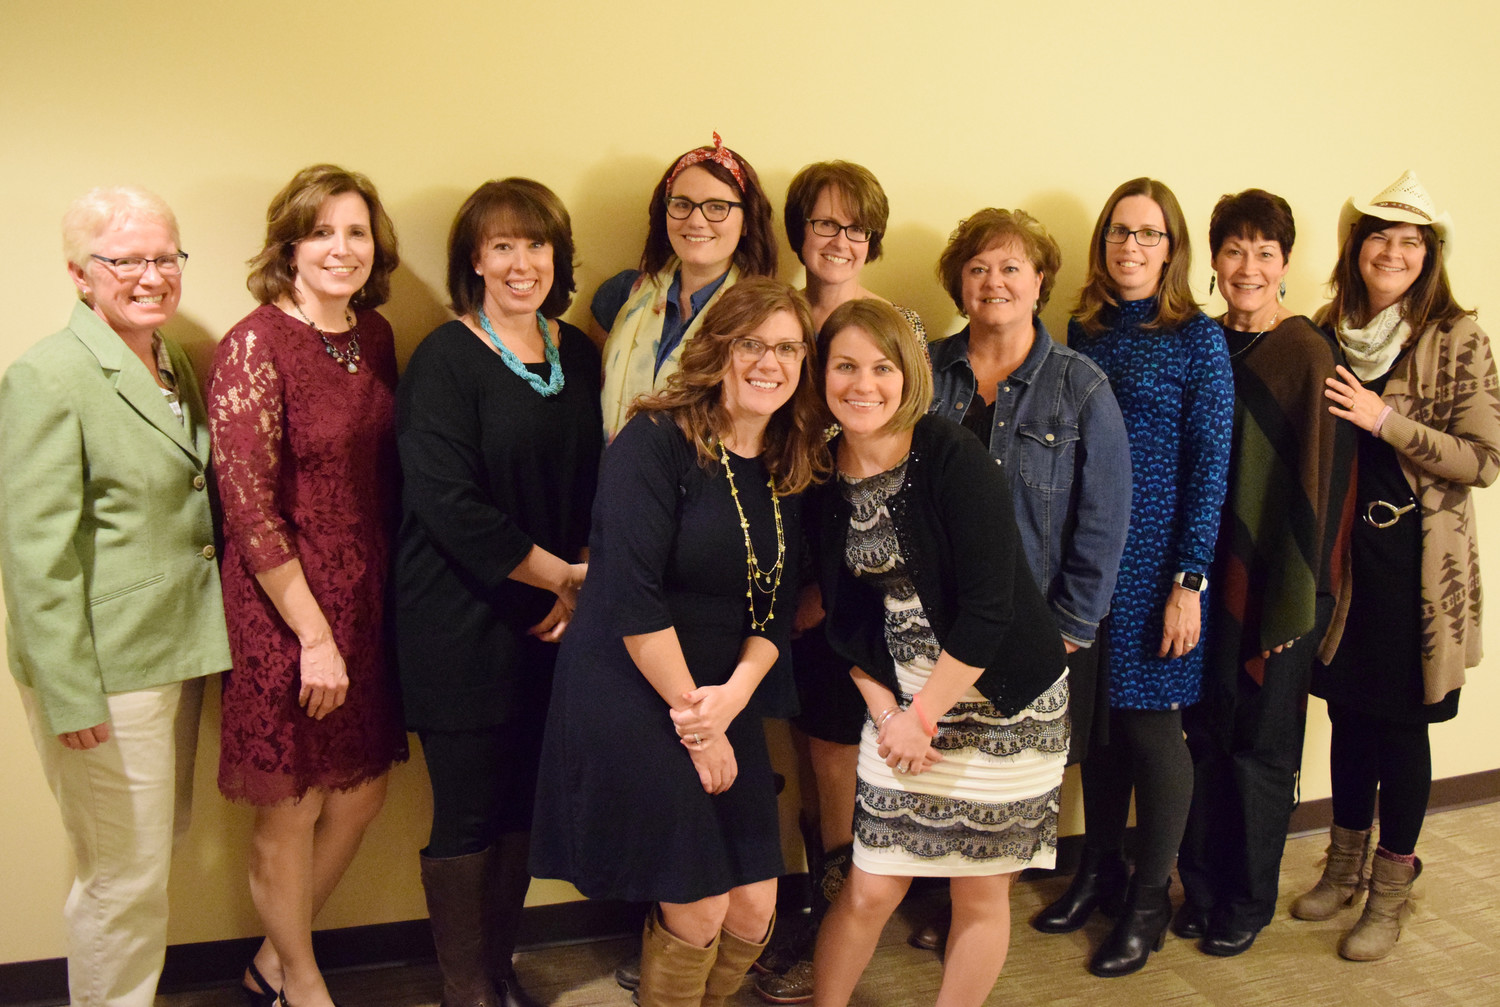 Former Lower Dauphin Superintendent Sherri Smith, left, presented awards from the LD Falcon Foundation on Jan. 27 to, back row, Tina Watkins, Kristen MacKay, Kellie Custer, Shannon Bastian, Natalie McCorkel, Stacy Kreitzer, Kathy Weber and Mary Smith and, front row, Lauren Bruce and Erica Wilkinson.